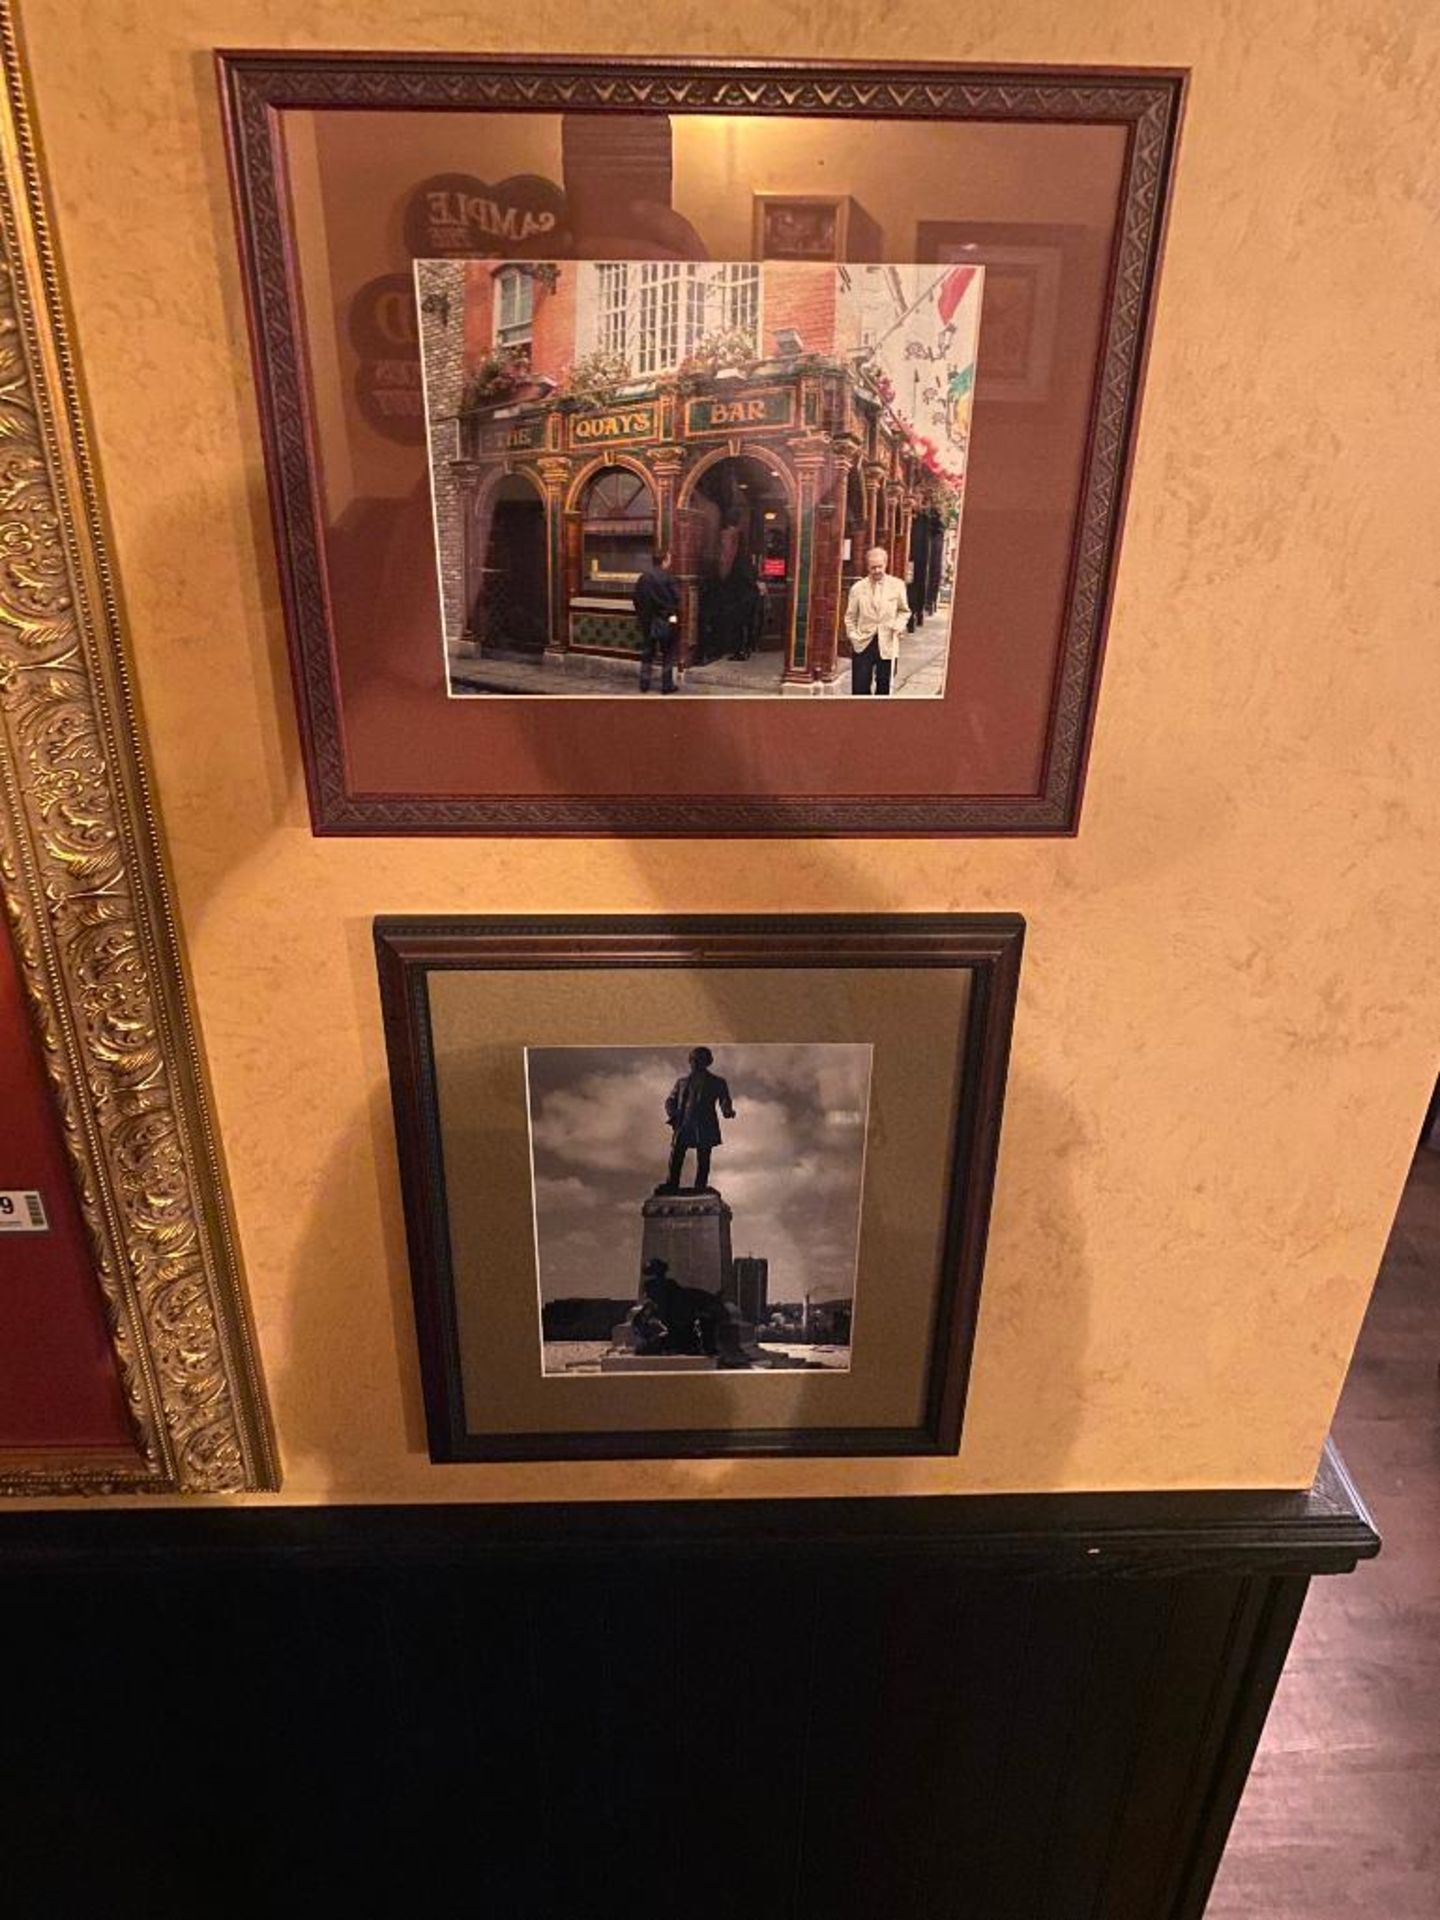 LOT OF (3) FRAMED MEMORABILIA PHOTOS - NOTE: REQUIRES REMOVAL FROM WALL, PLEASE INSPECT - Image 2 of 3